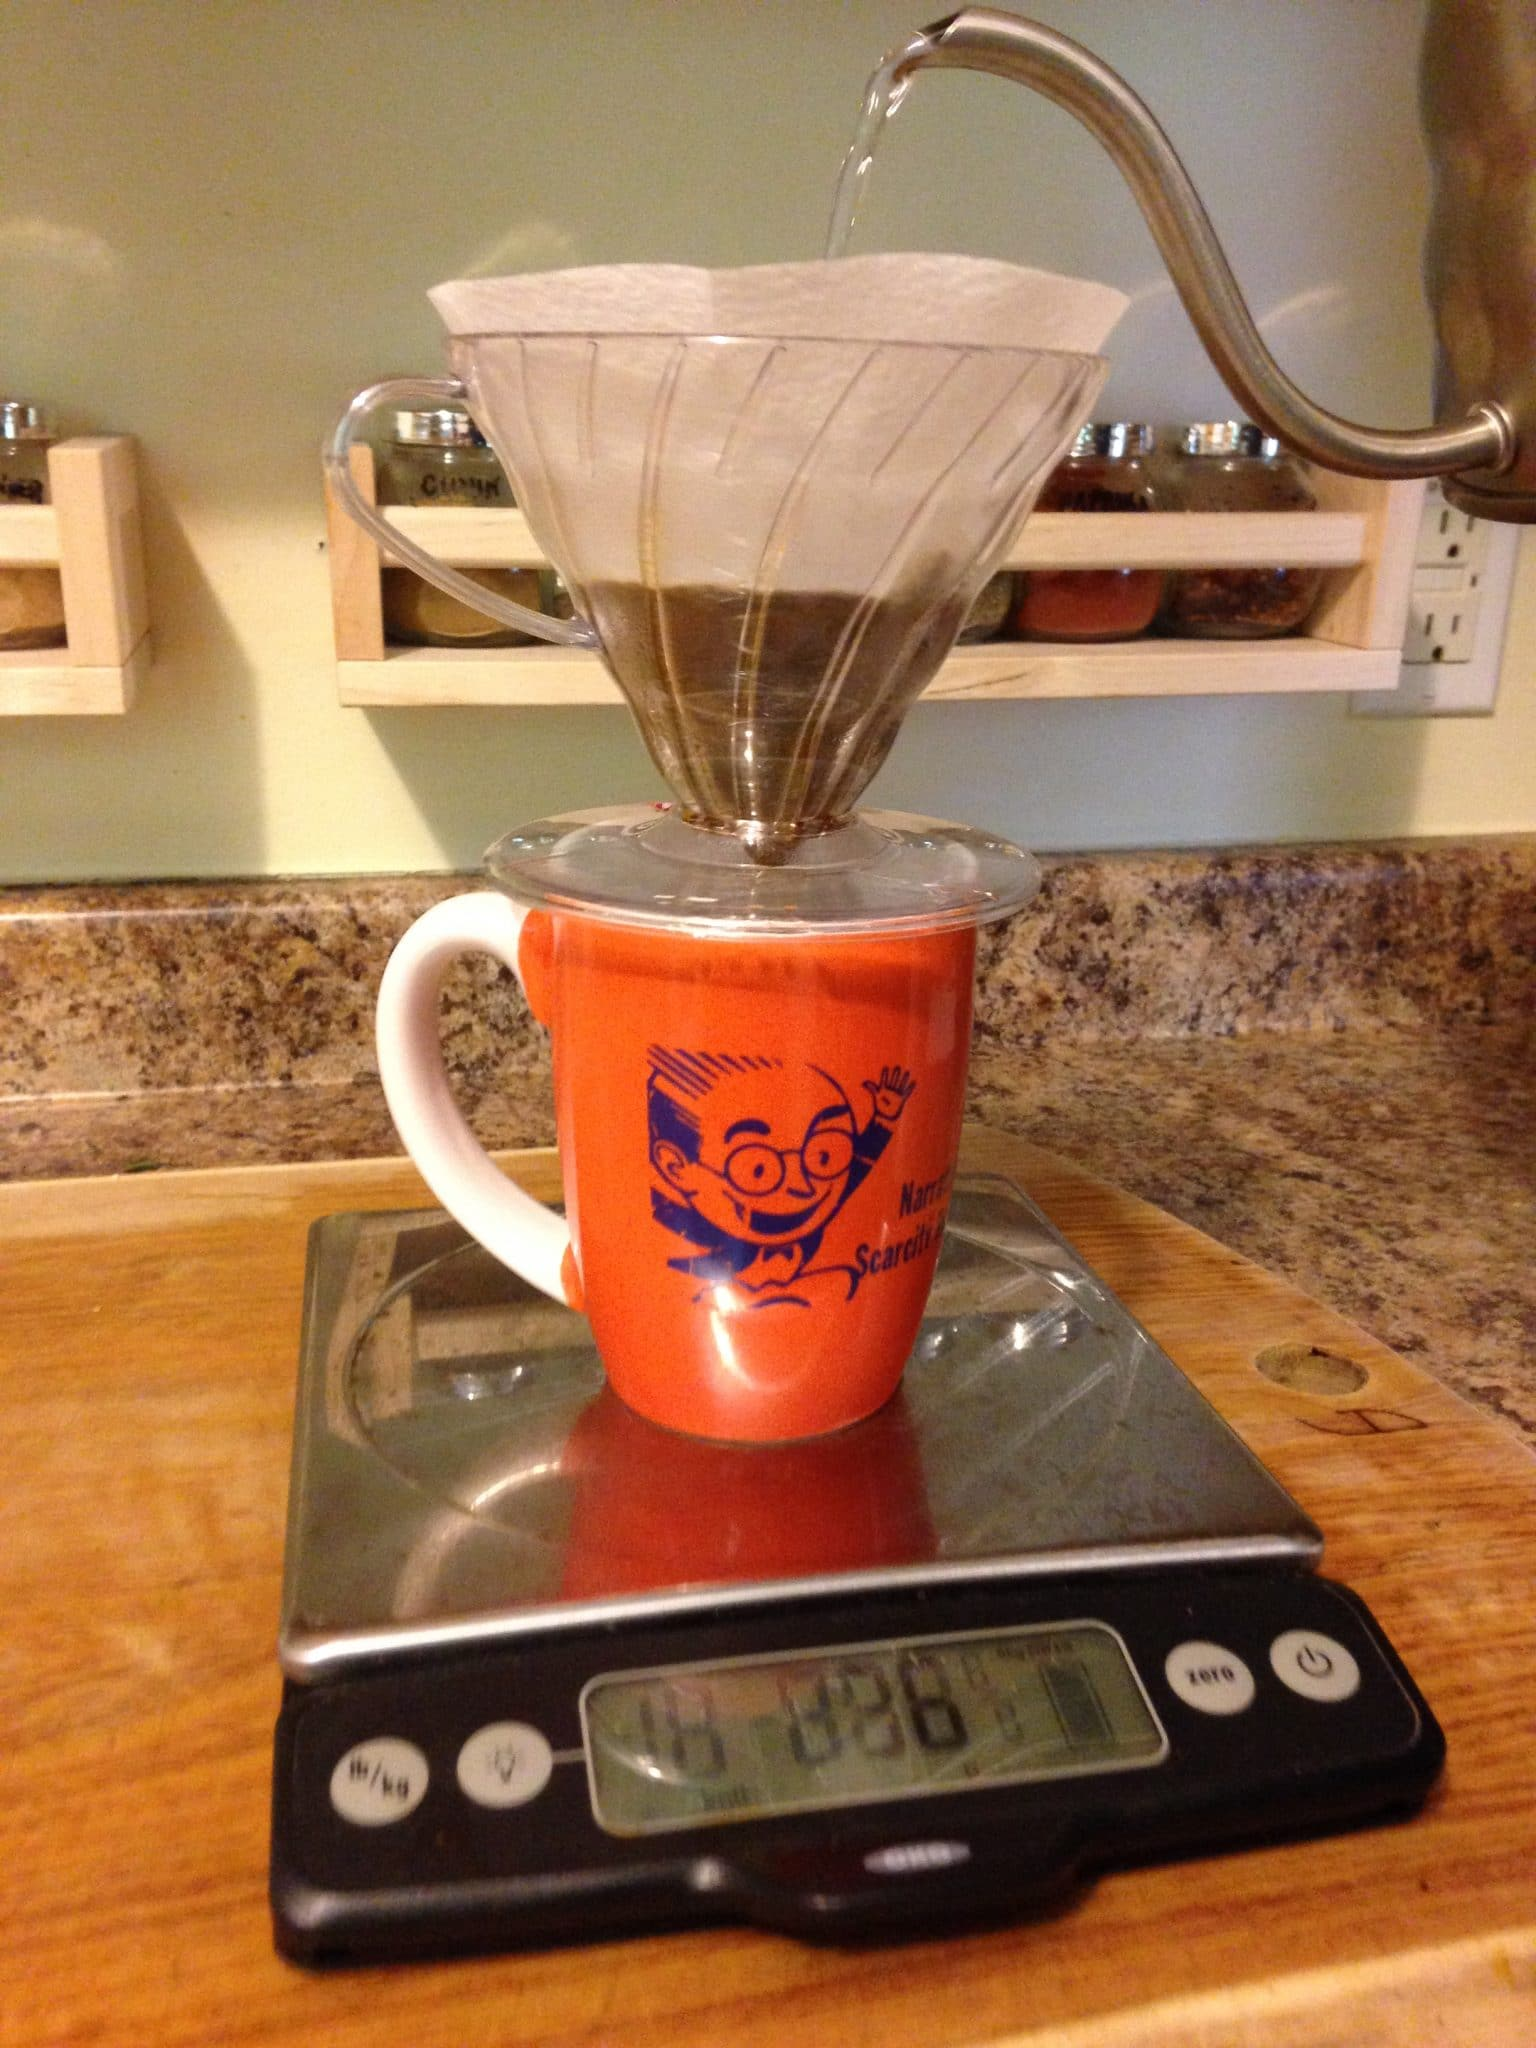 Making a pour over of coffee at home, on a scale, in the kitchen